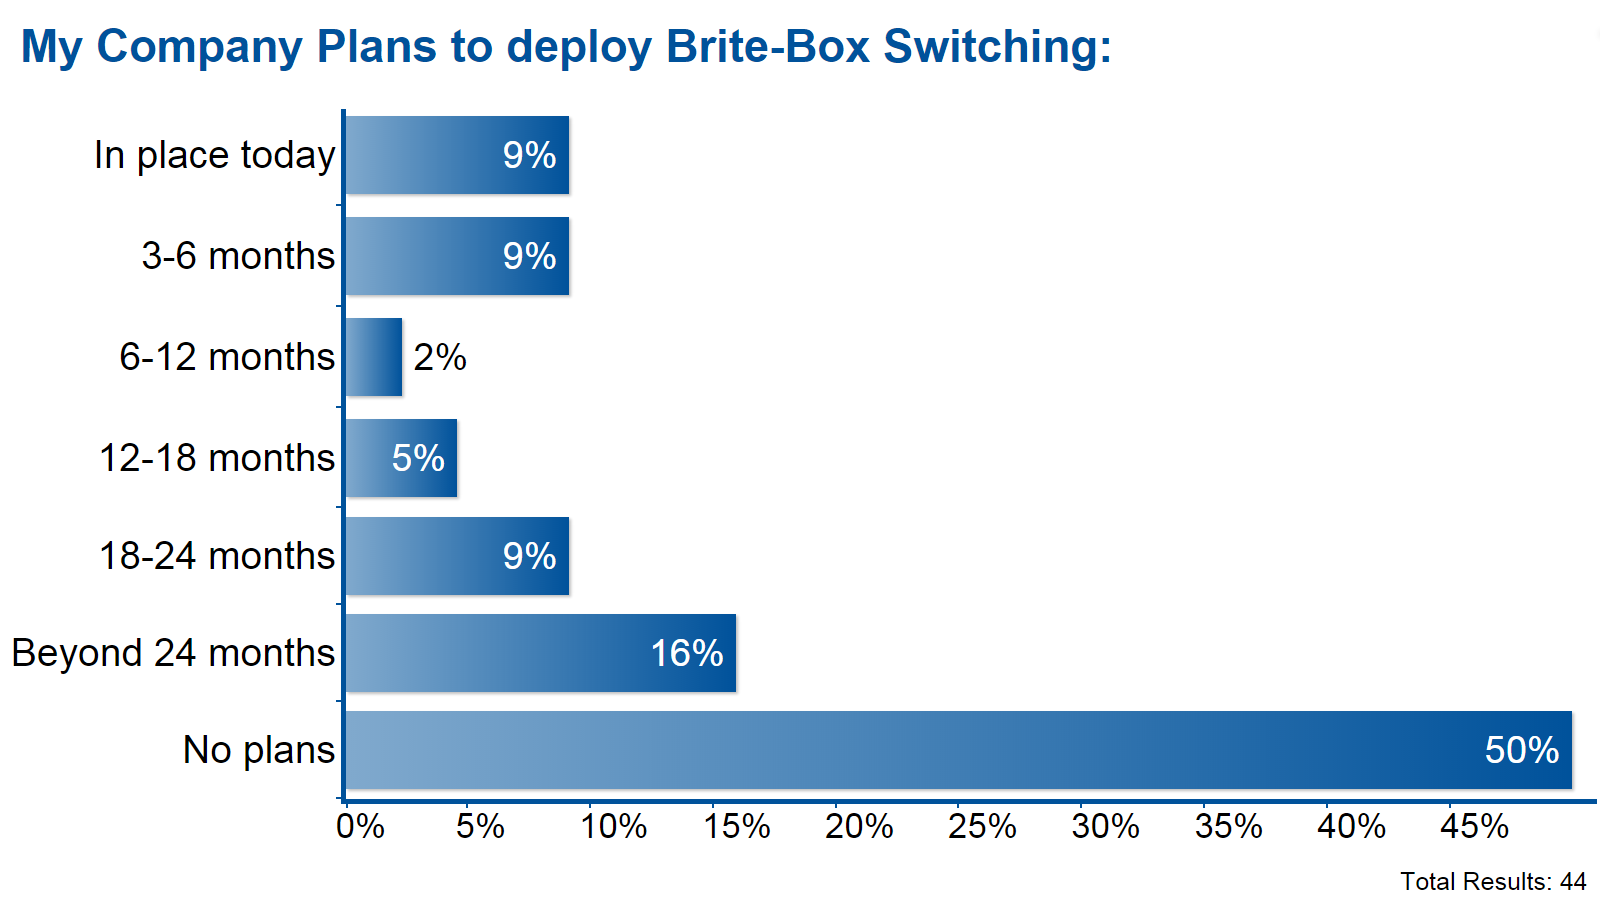 My Company Plans to deploy Brite-Box Switching